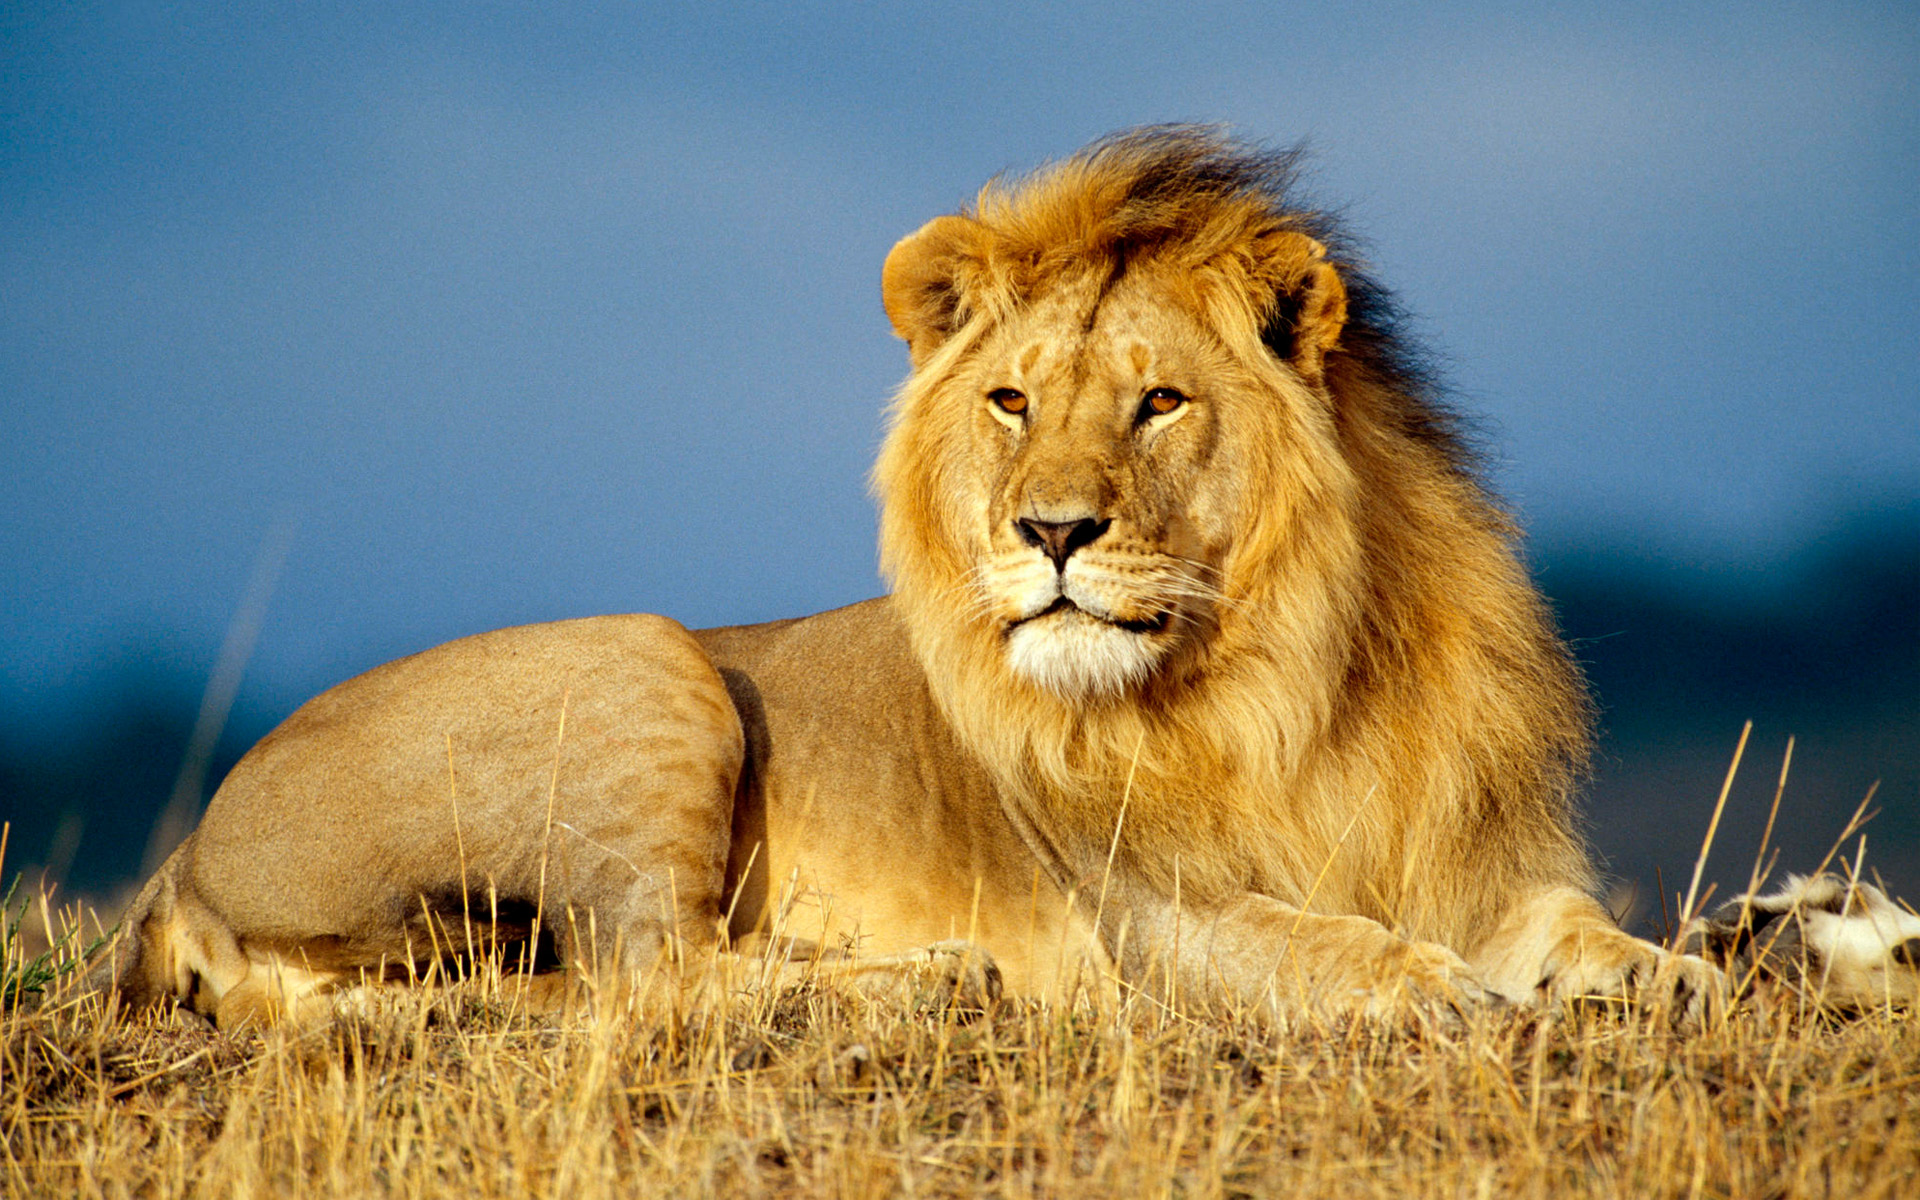 Power Animal of the Week – LION